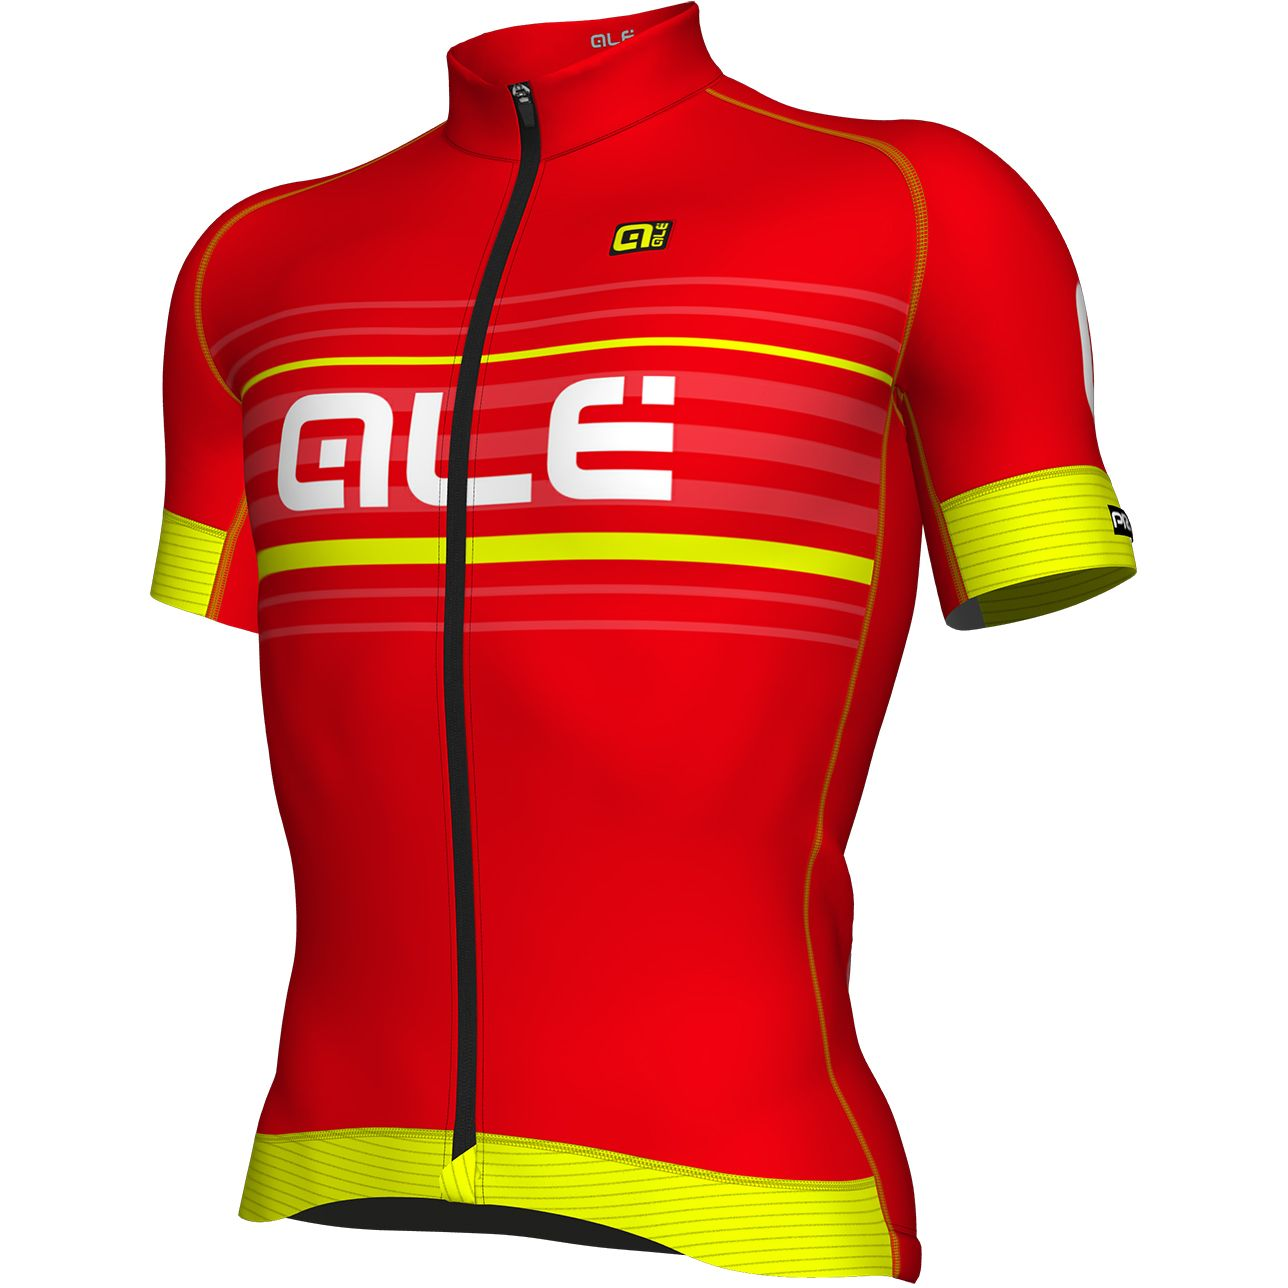 detail ALÉ GRAPHICS PRR SALITA JERSEY Red/Fluo Yellow